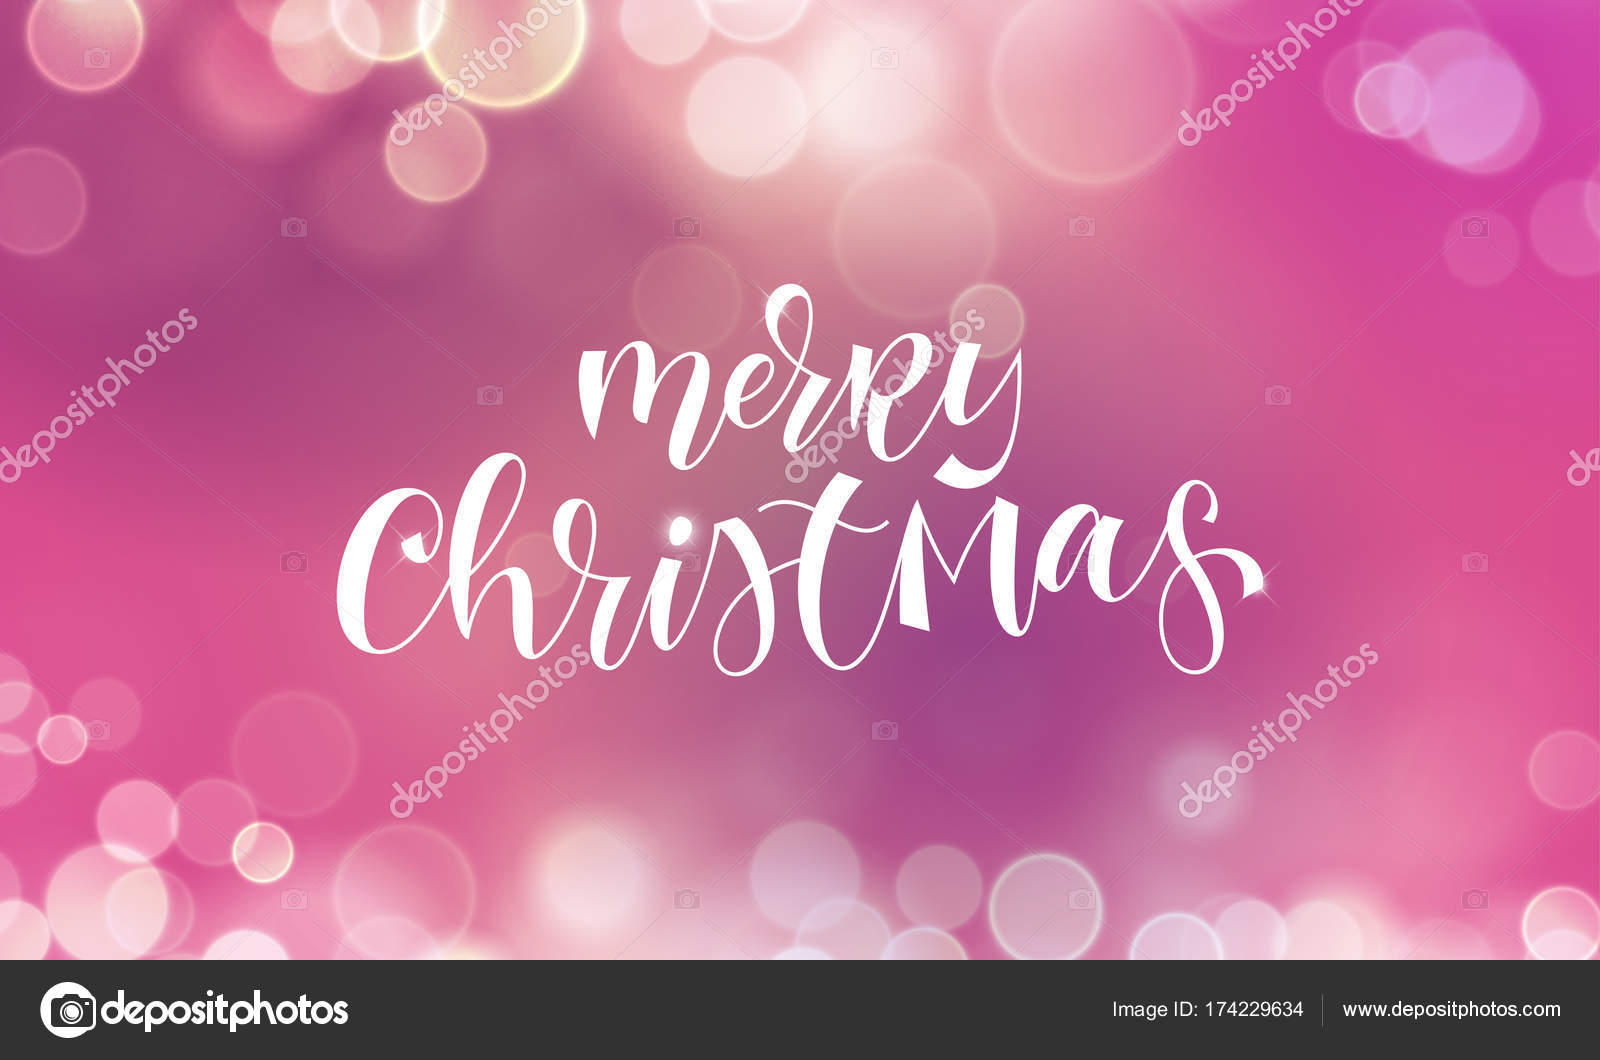 Merry Christmas Greeting Card And Calligraphy Lettering On Festive